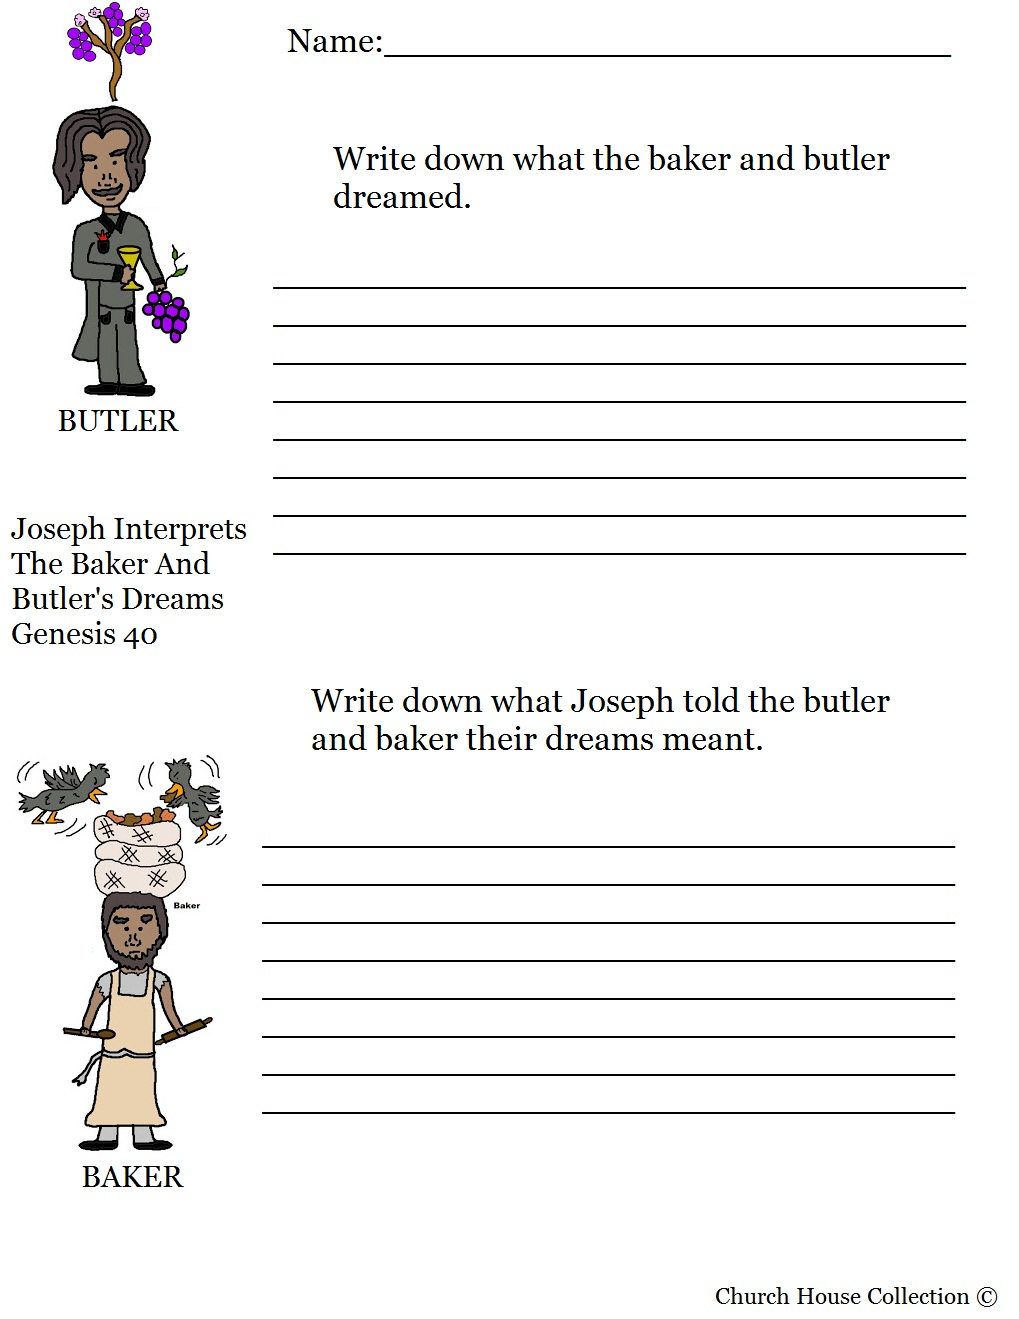 Church House Collection Blog: Joseph Interprets The Baker ...